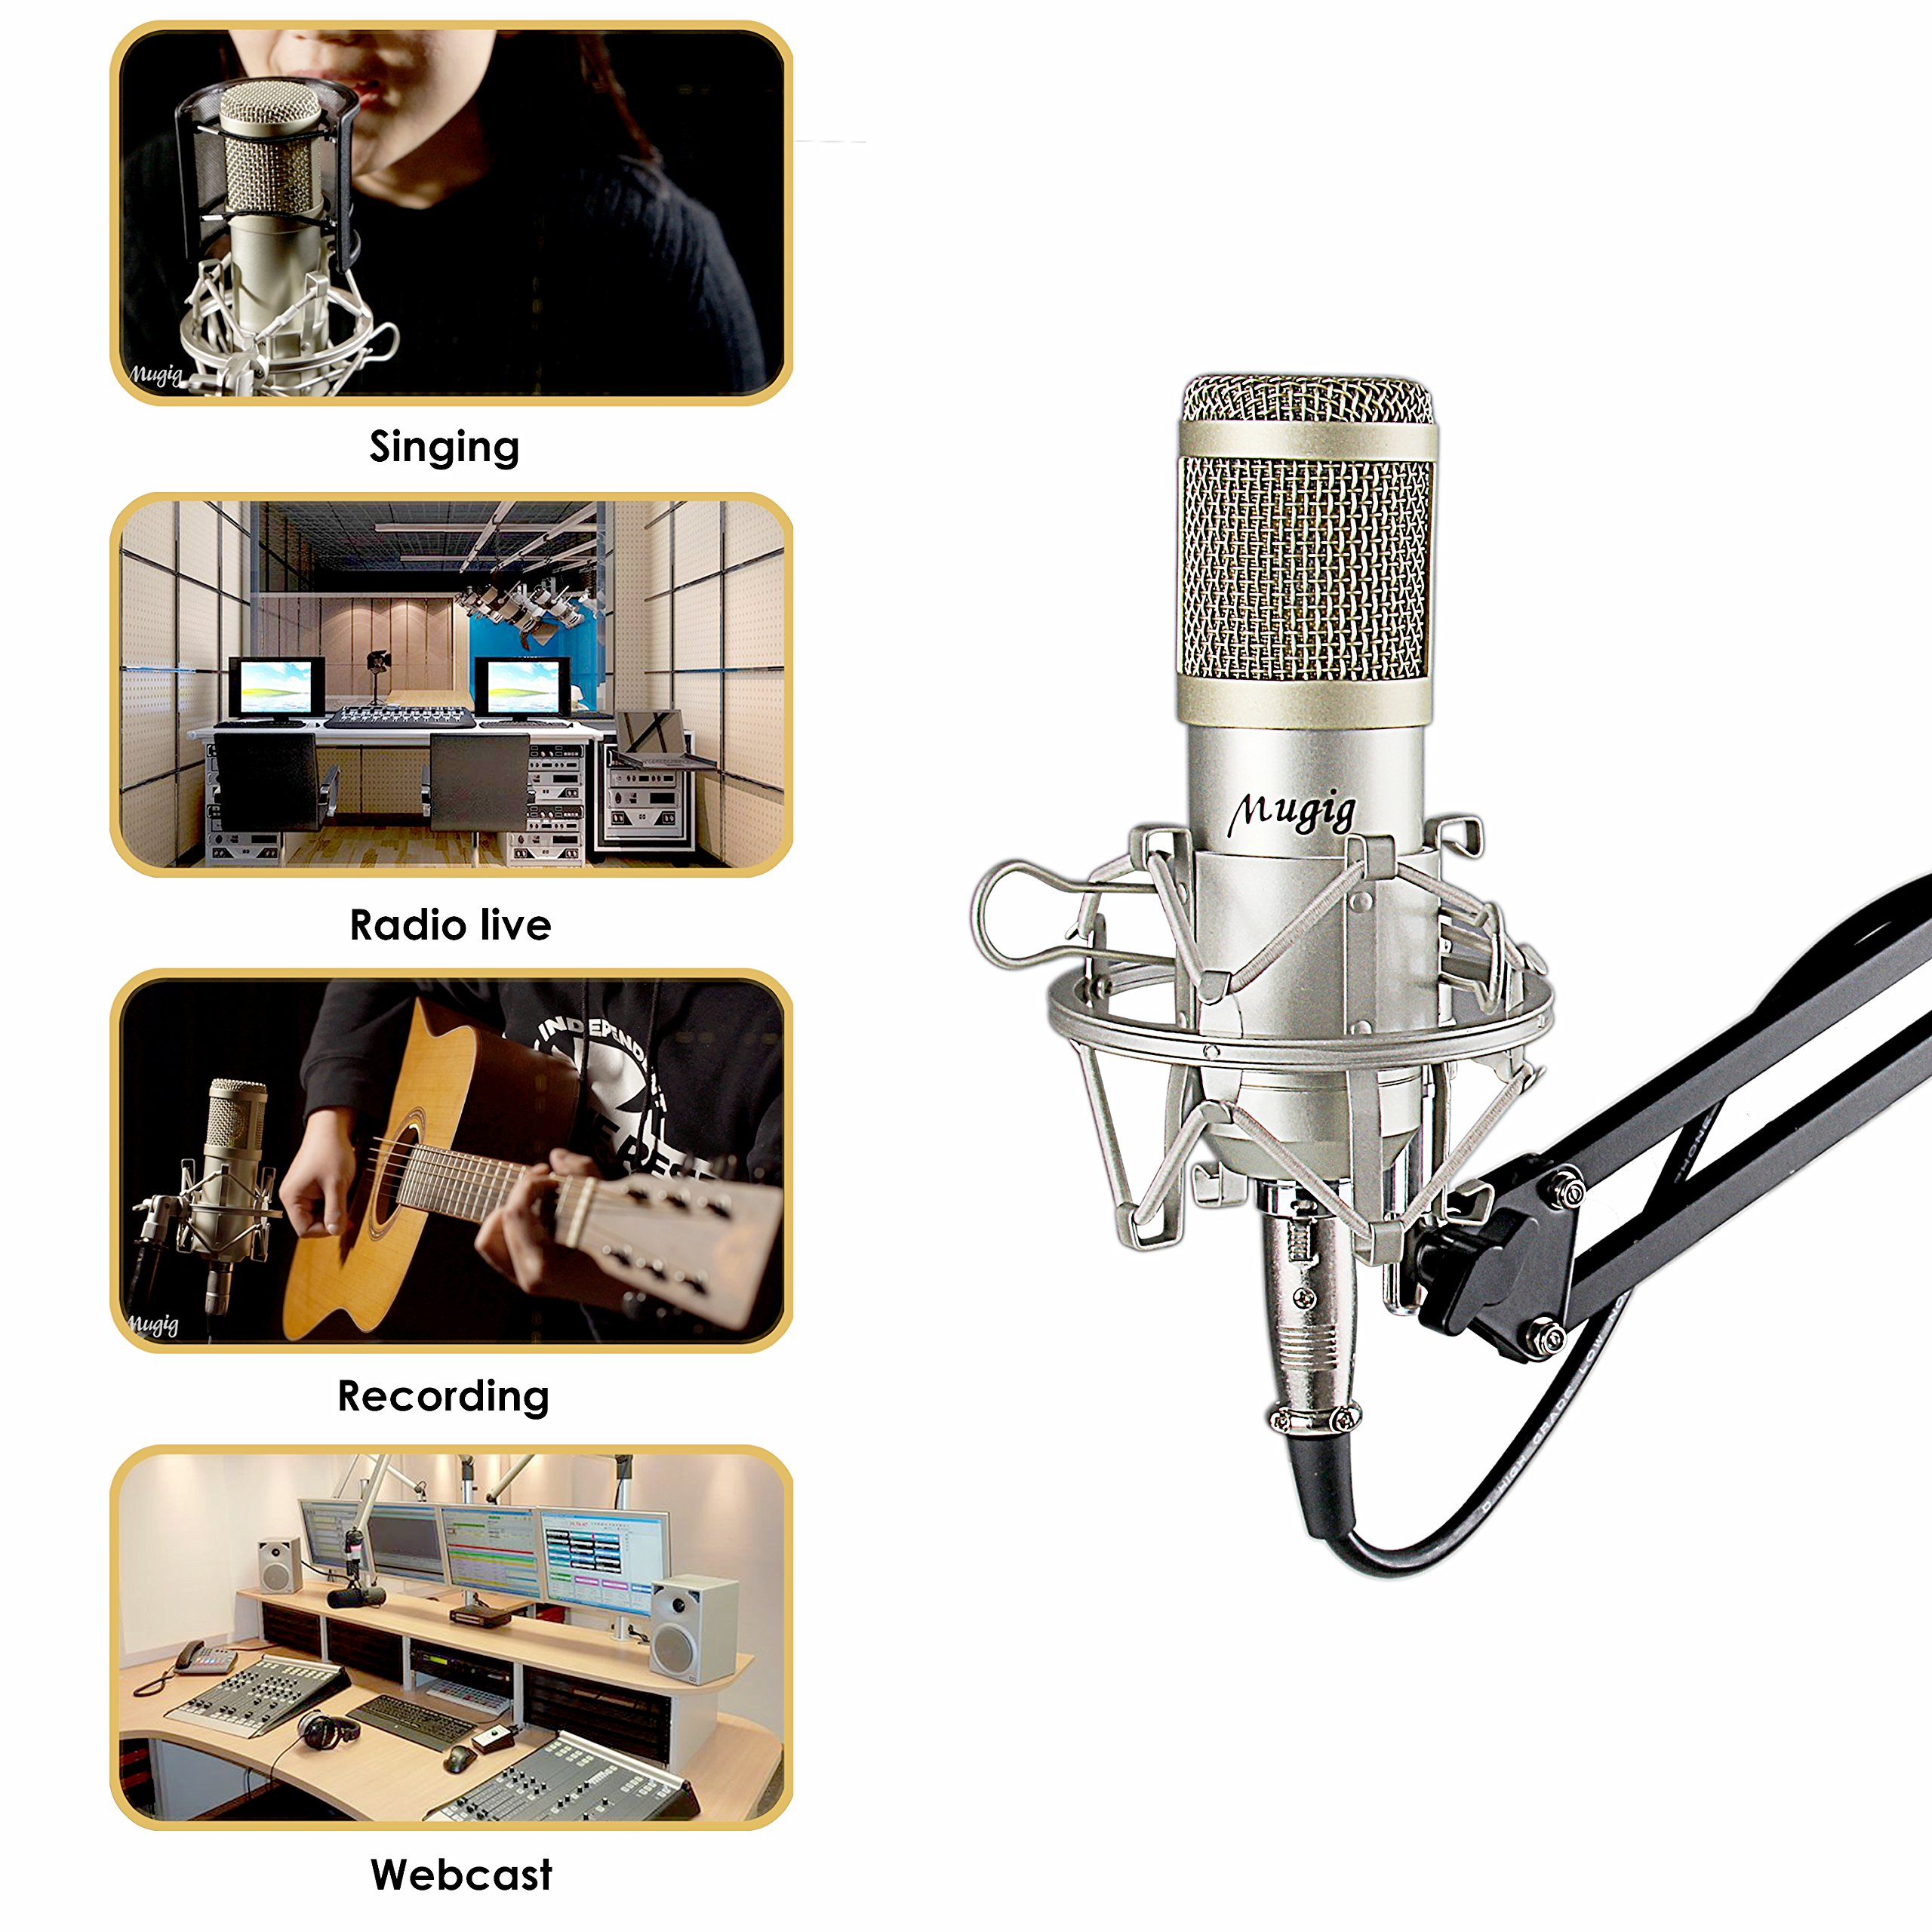 Mugig Condenser Microphone for Recording, Singing, Professional Studio Broadcasting Recording Mic Kit with Boom Arm Stand, Shock Mount and Pop Filter